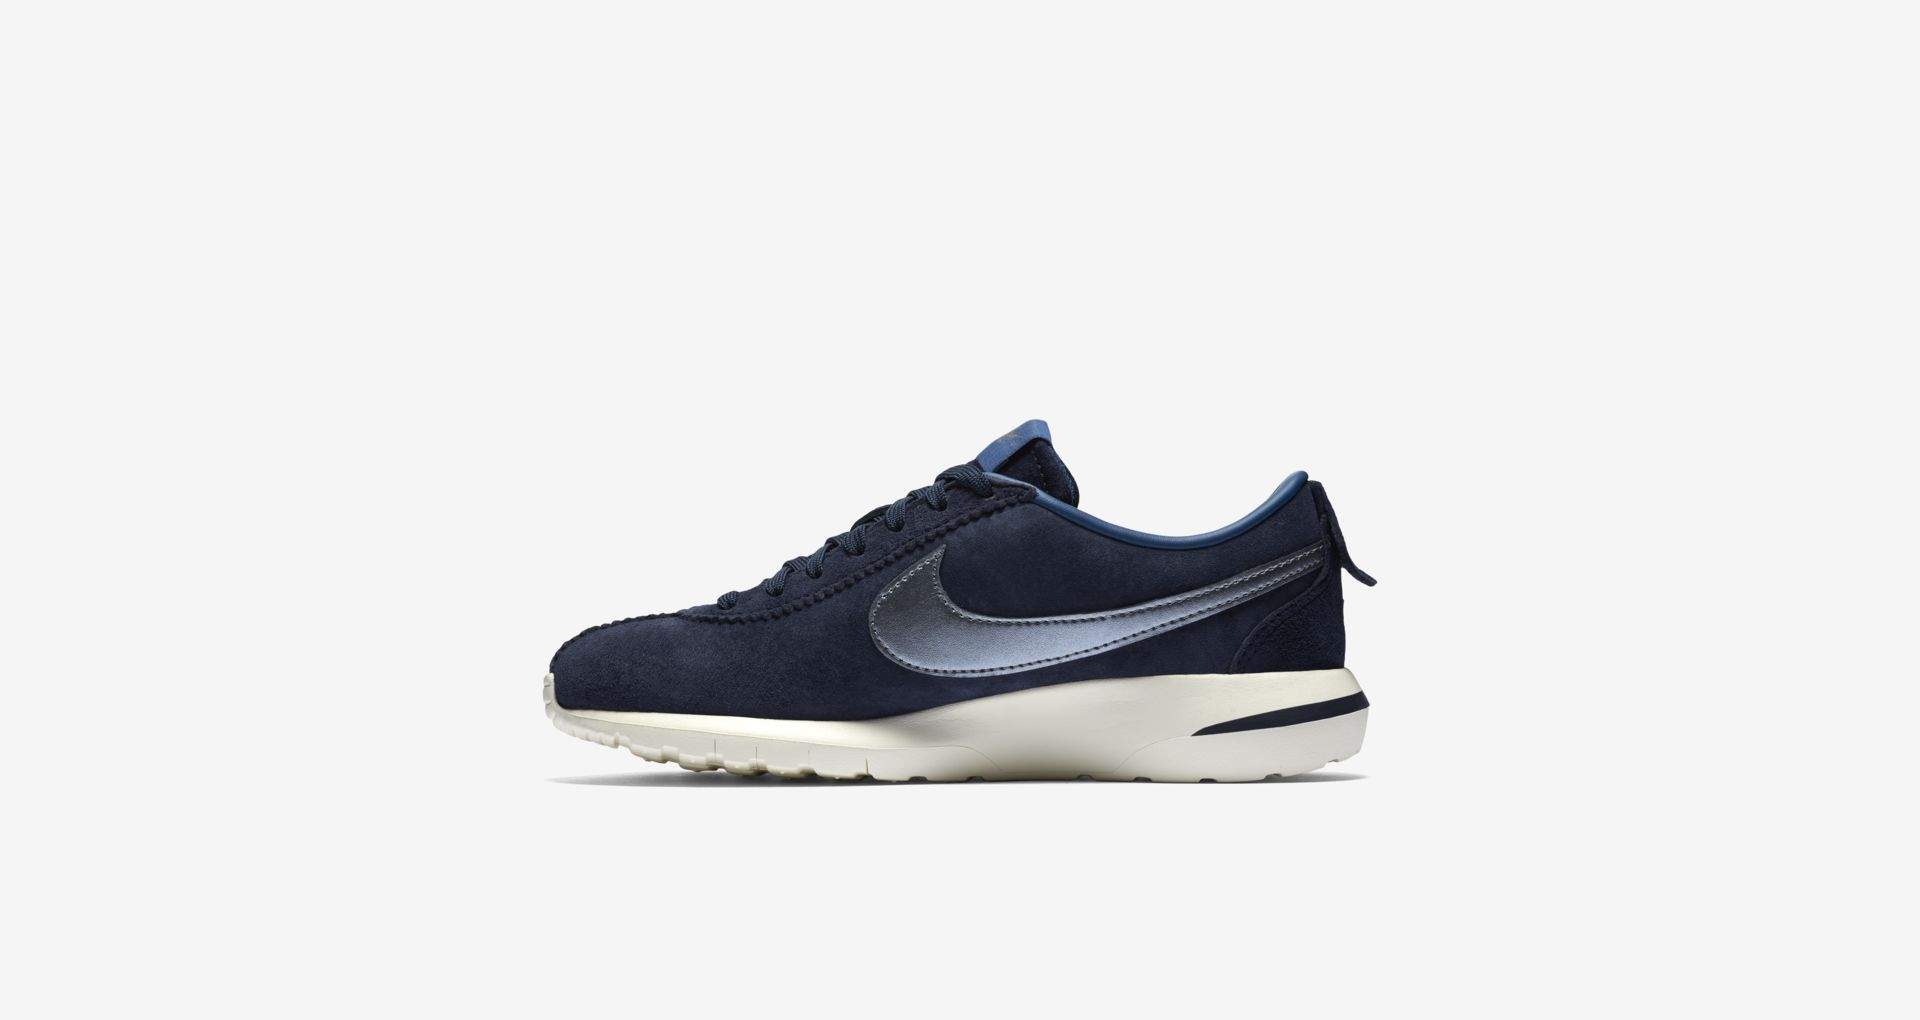 a7061fc6715c0 ... low price womens nike roshe cortez premium suede midnight navy.  nikeu2060 snkrs da370 6a137 ...